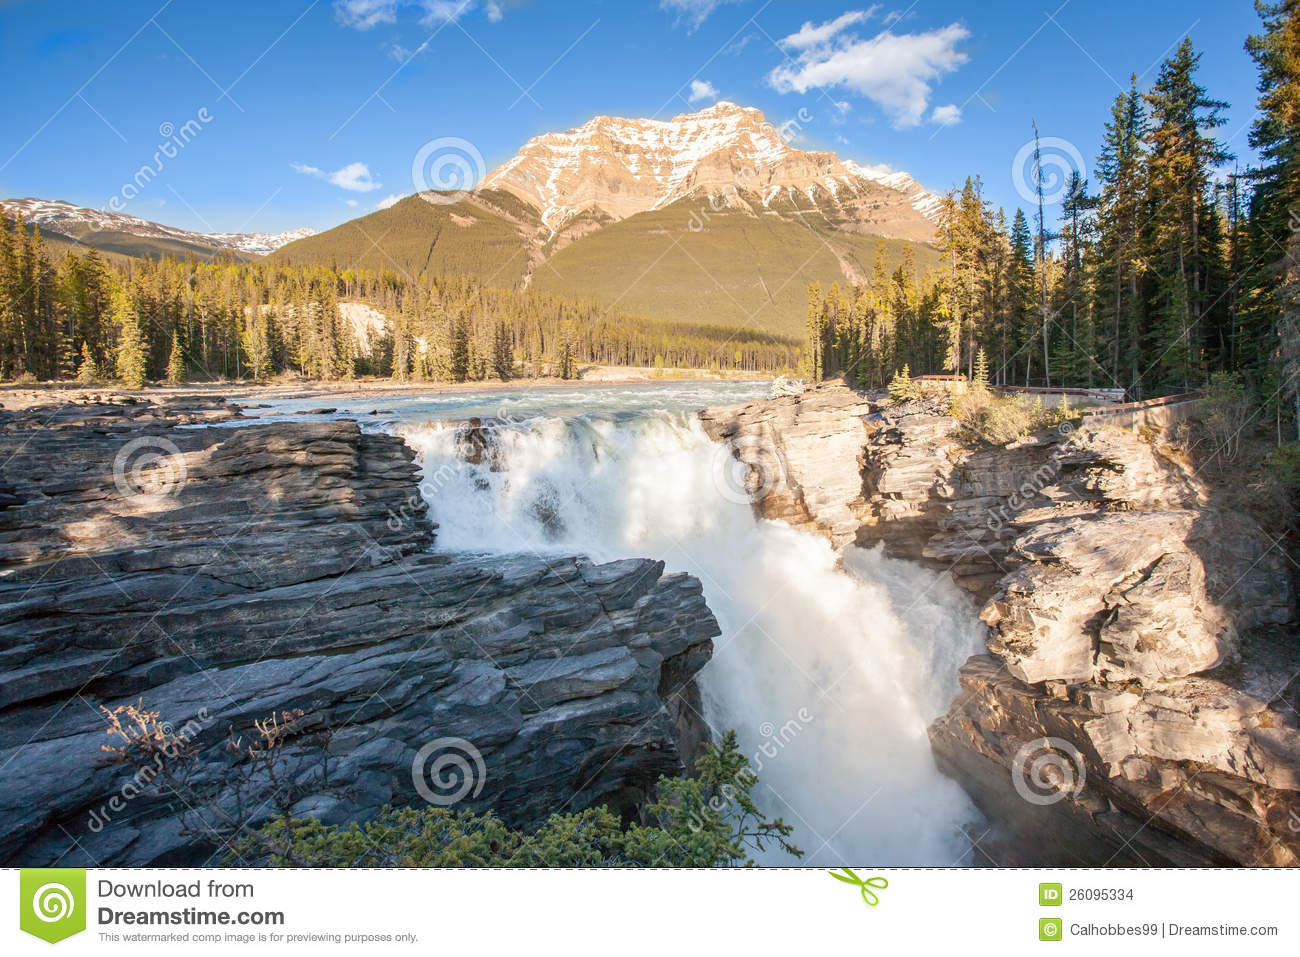 Athabasca Falls clipart #19, Download drawings